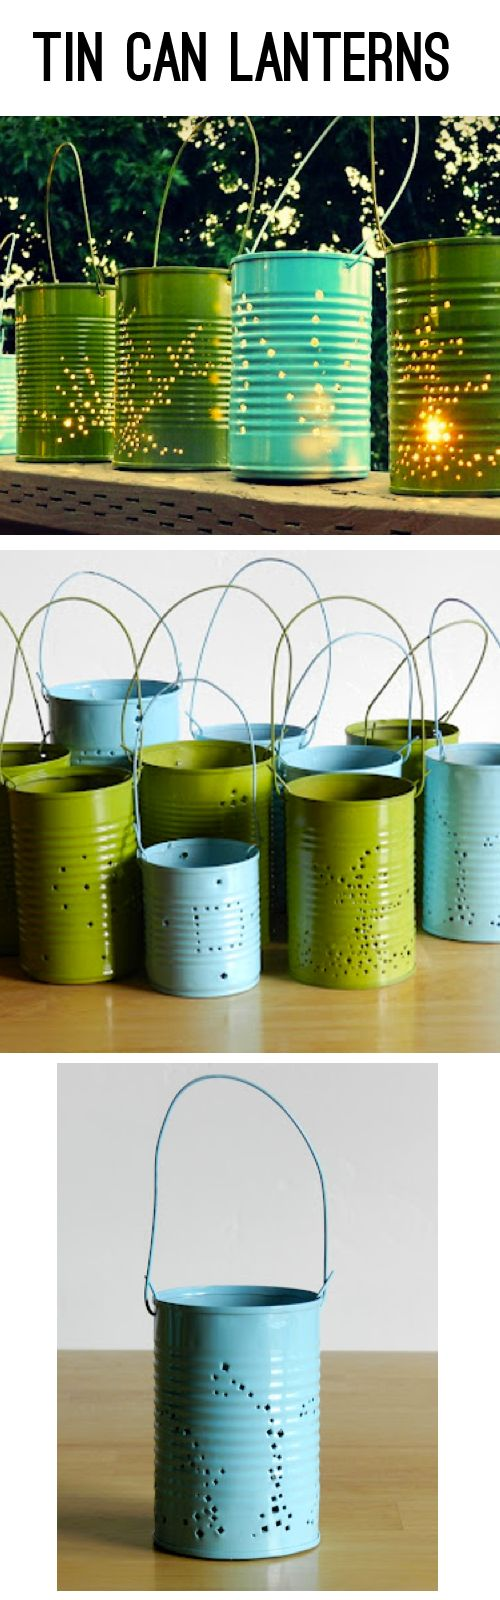 Tin Can Lanterns-have pinned this elsewhere for hallowe'en/christmas ideas for kids, you can make a design specific to the holiday-very effective, MUSt do this this year